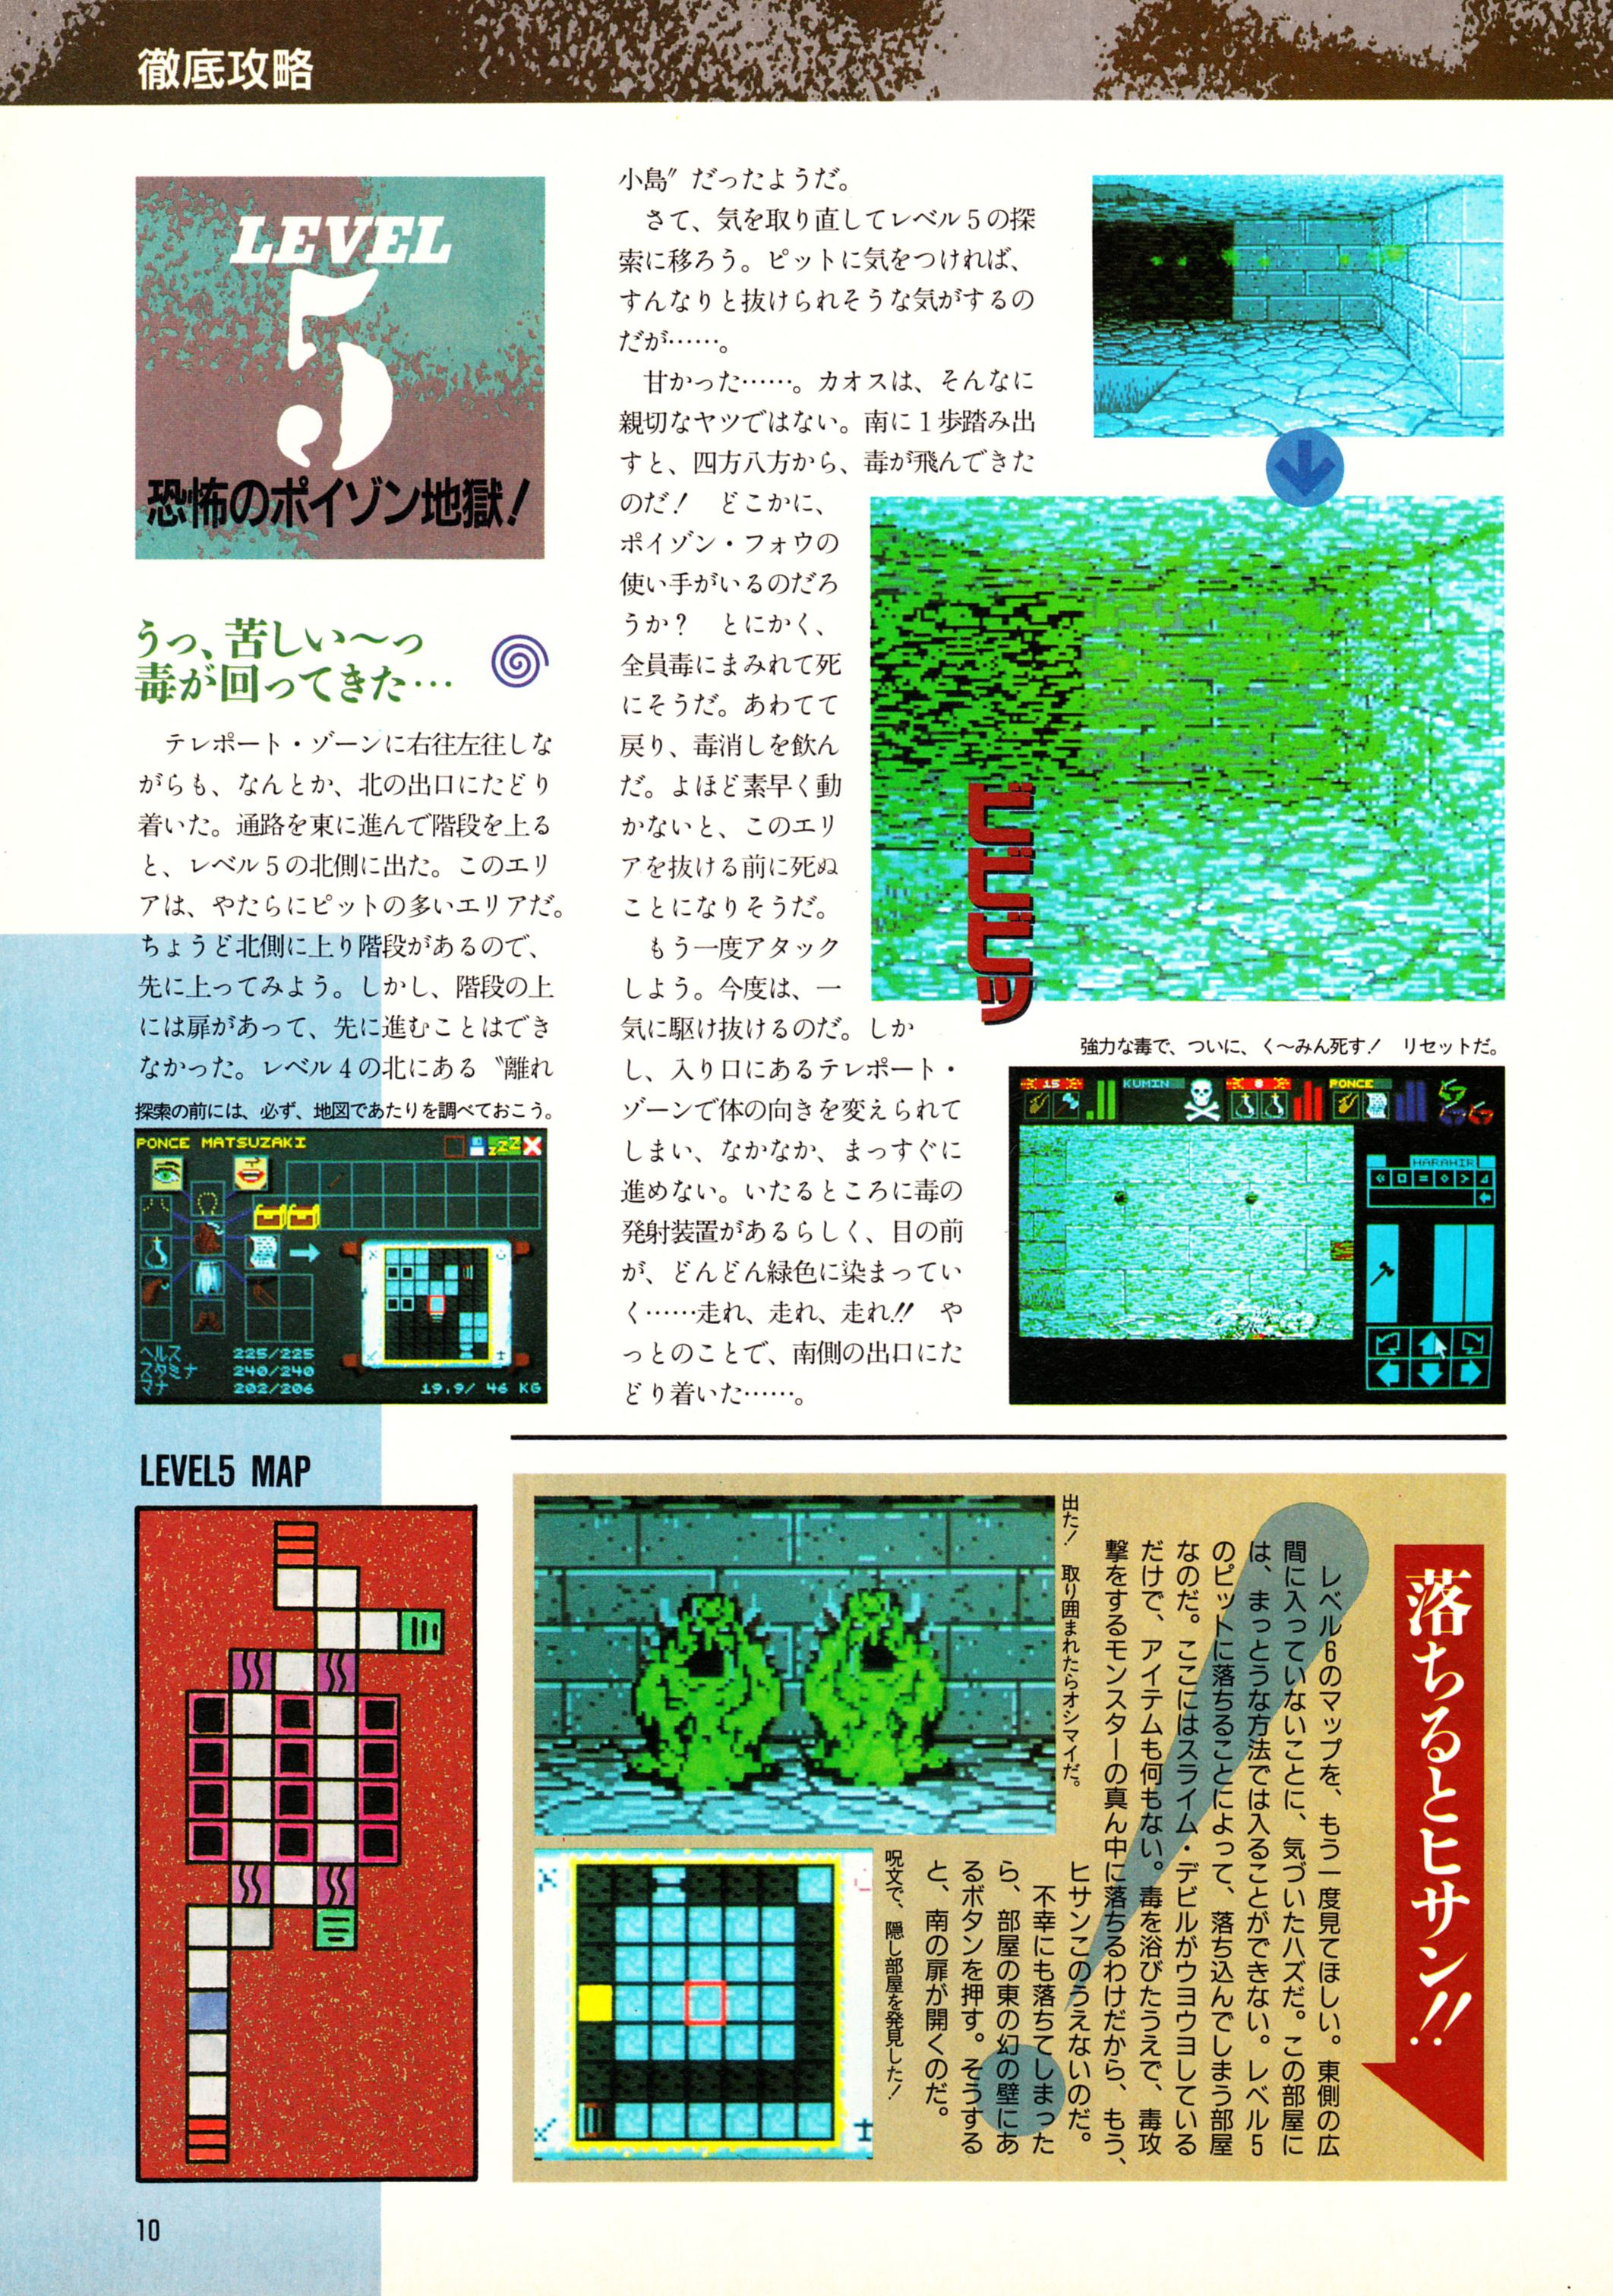 Supplement - Chaos Strikes Back Companion Guide II Guide published in Japanese magazine 'Popcom', Vol 9 No 3 01 March 1991, Page 12